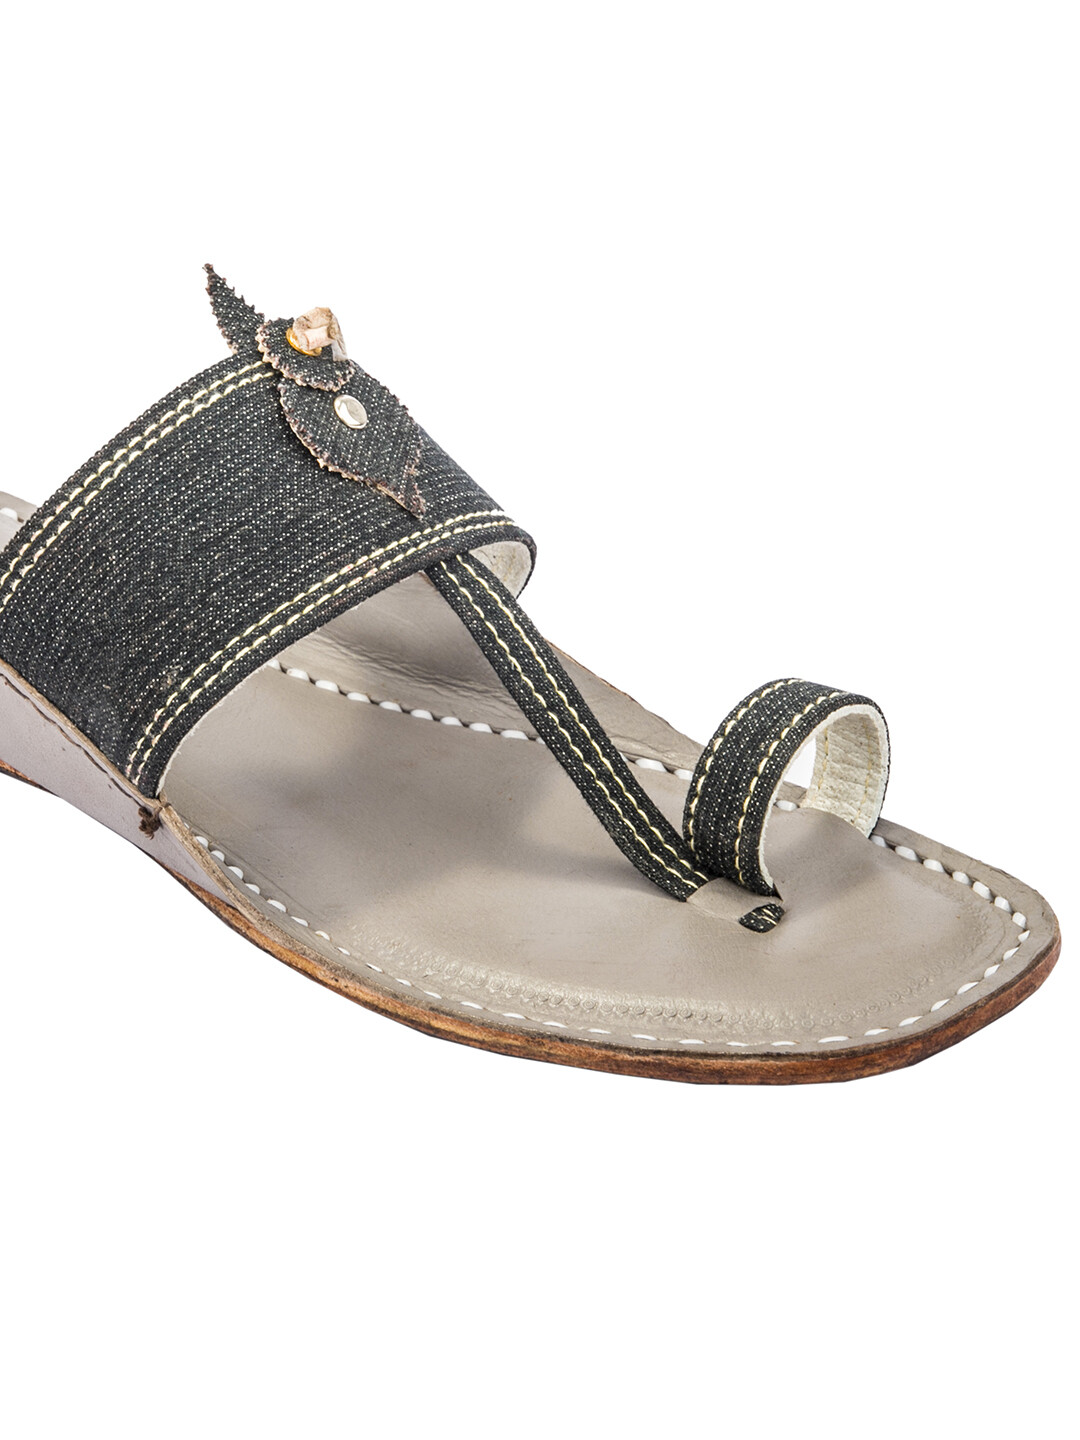 KORAKARI Light Grey Base and Dark Grey Denim Upper Pure Leather Kolhapuri Sandal for Men